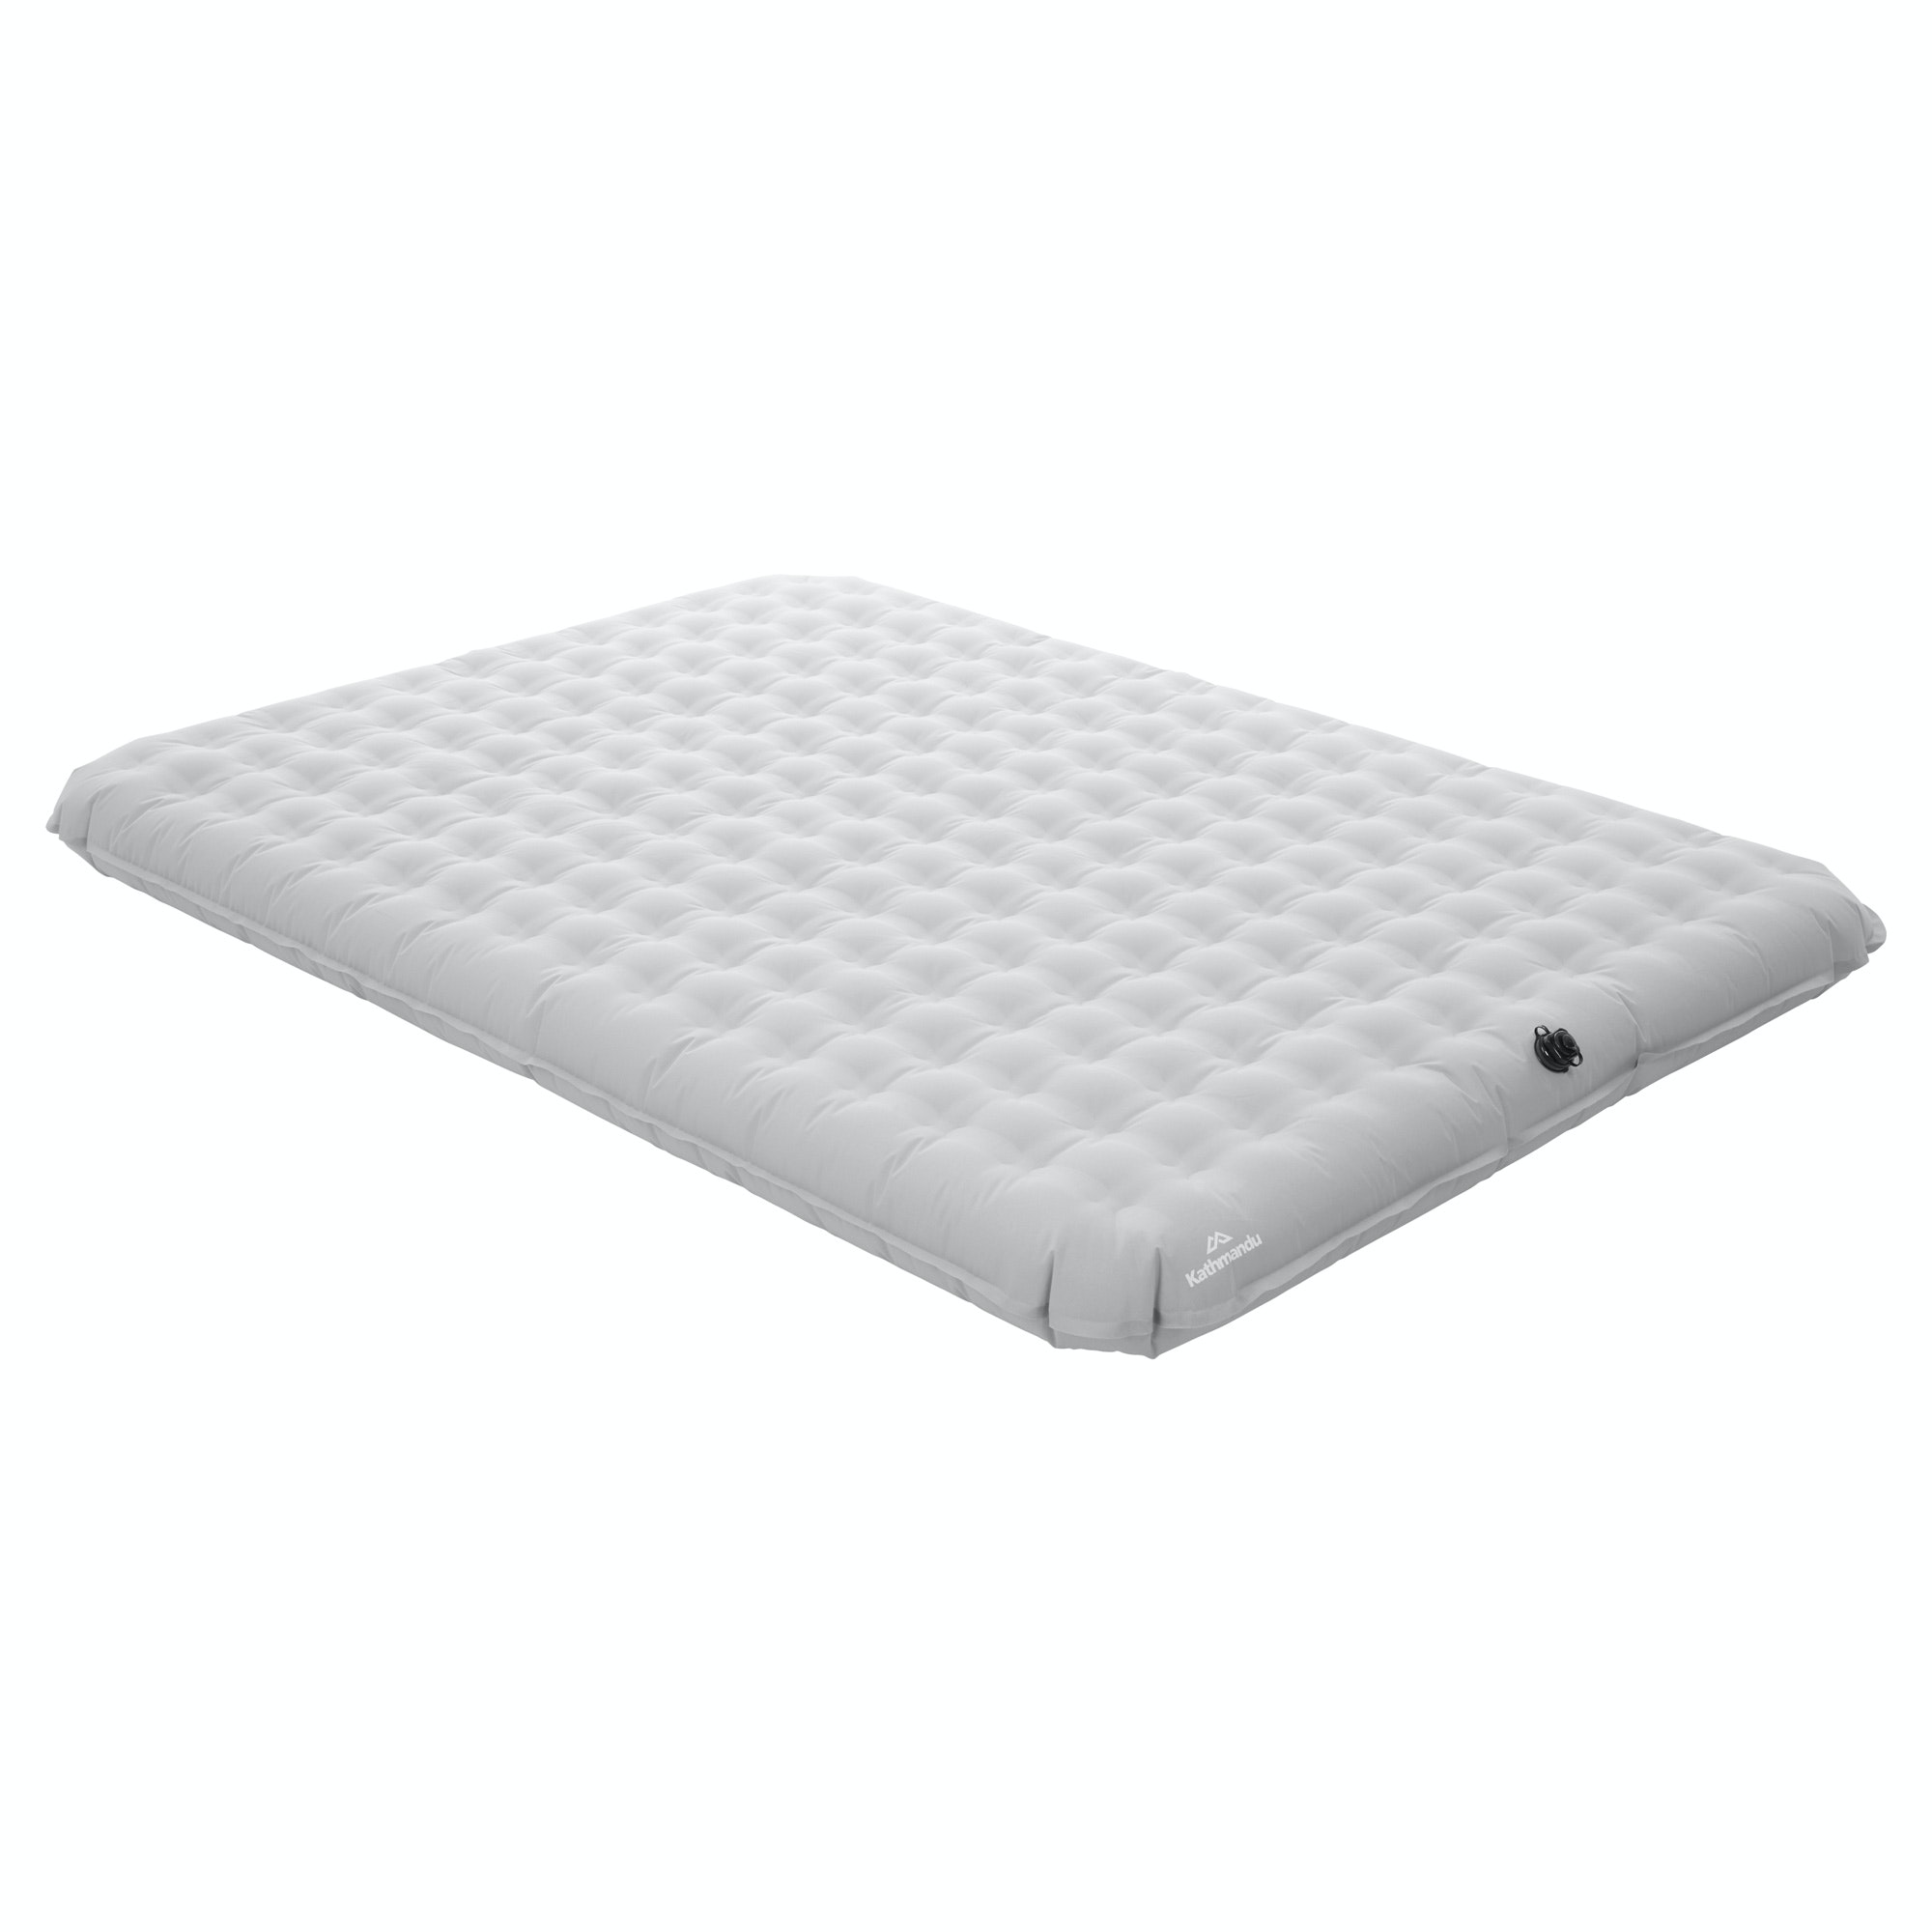 green free product raised air size in overstock pump dream toys shipping built mattress easy today comfort w sports queen